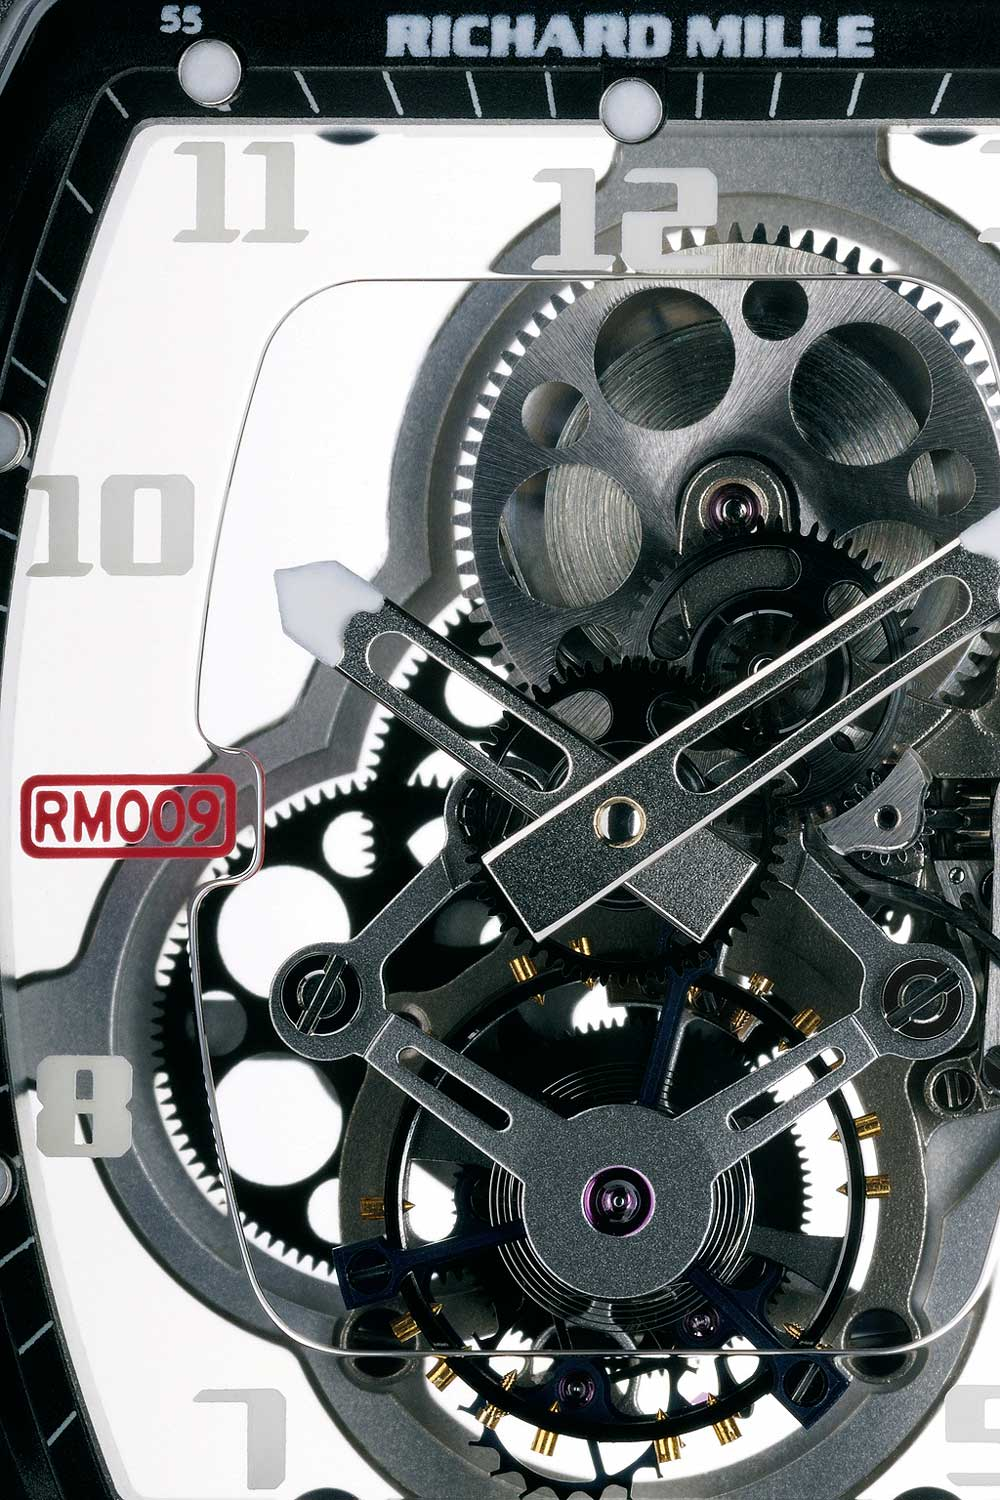 The nothingness that is the RM 009's skeletonized movement